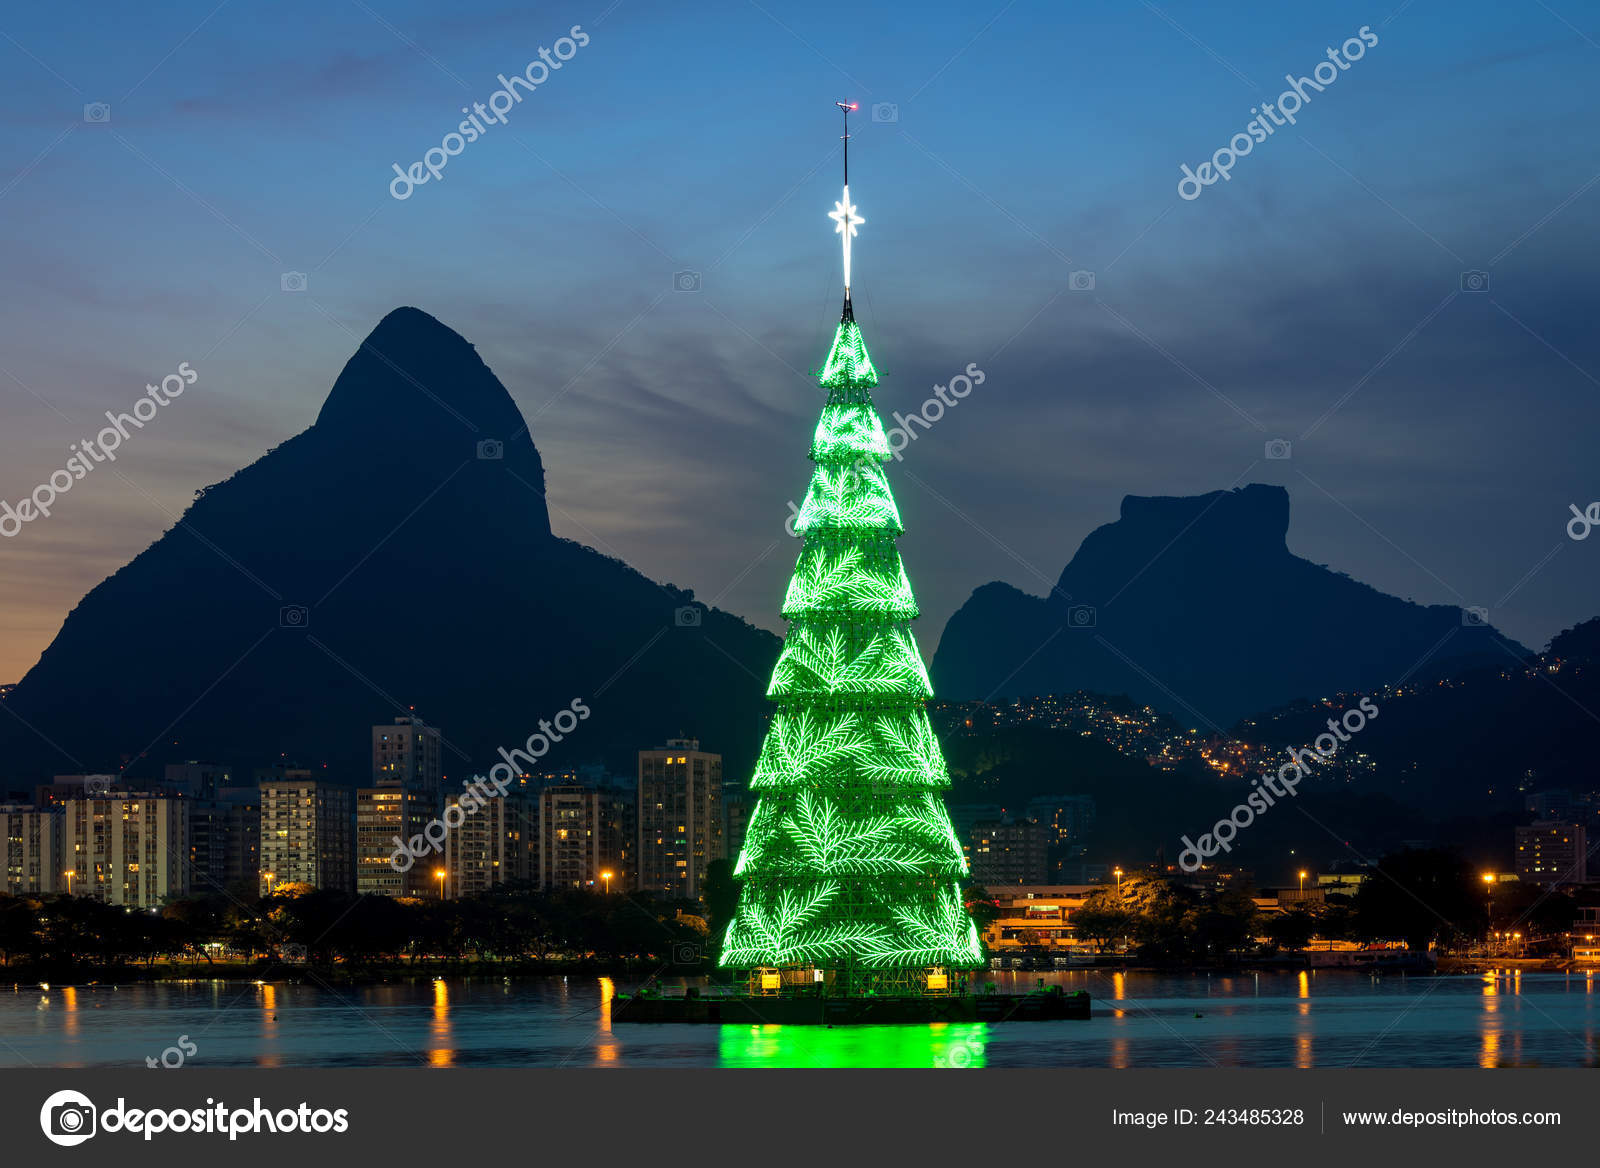 Christmas In Brazil.Rio Janeiro Brazil December 2018 Christmas Tree Middle